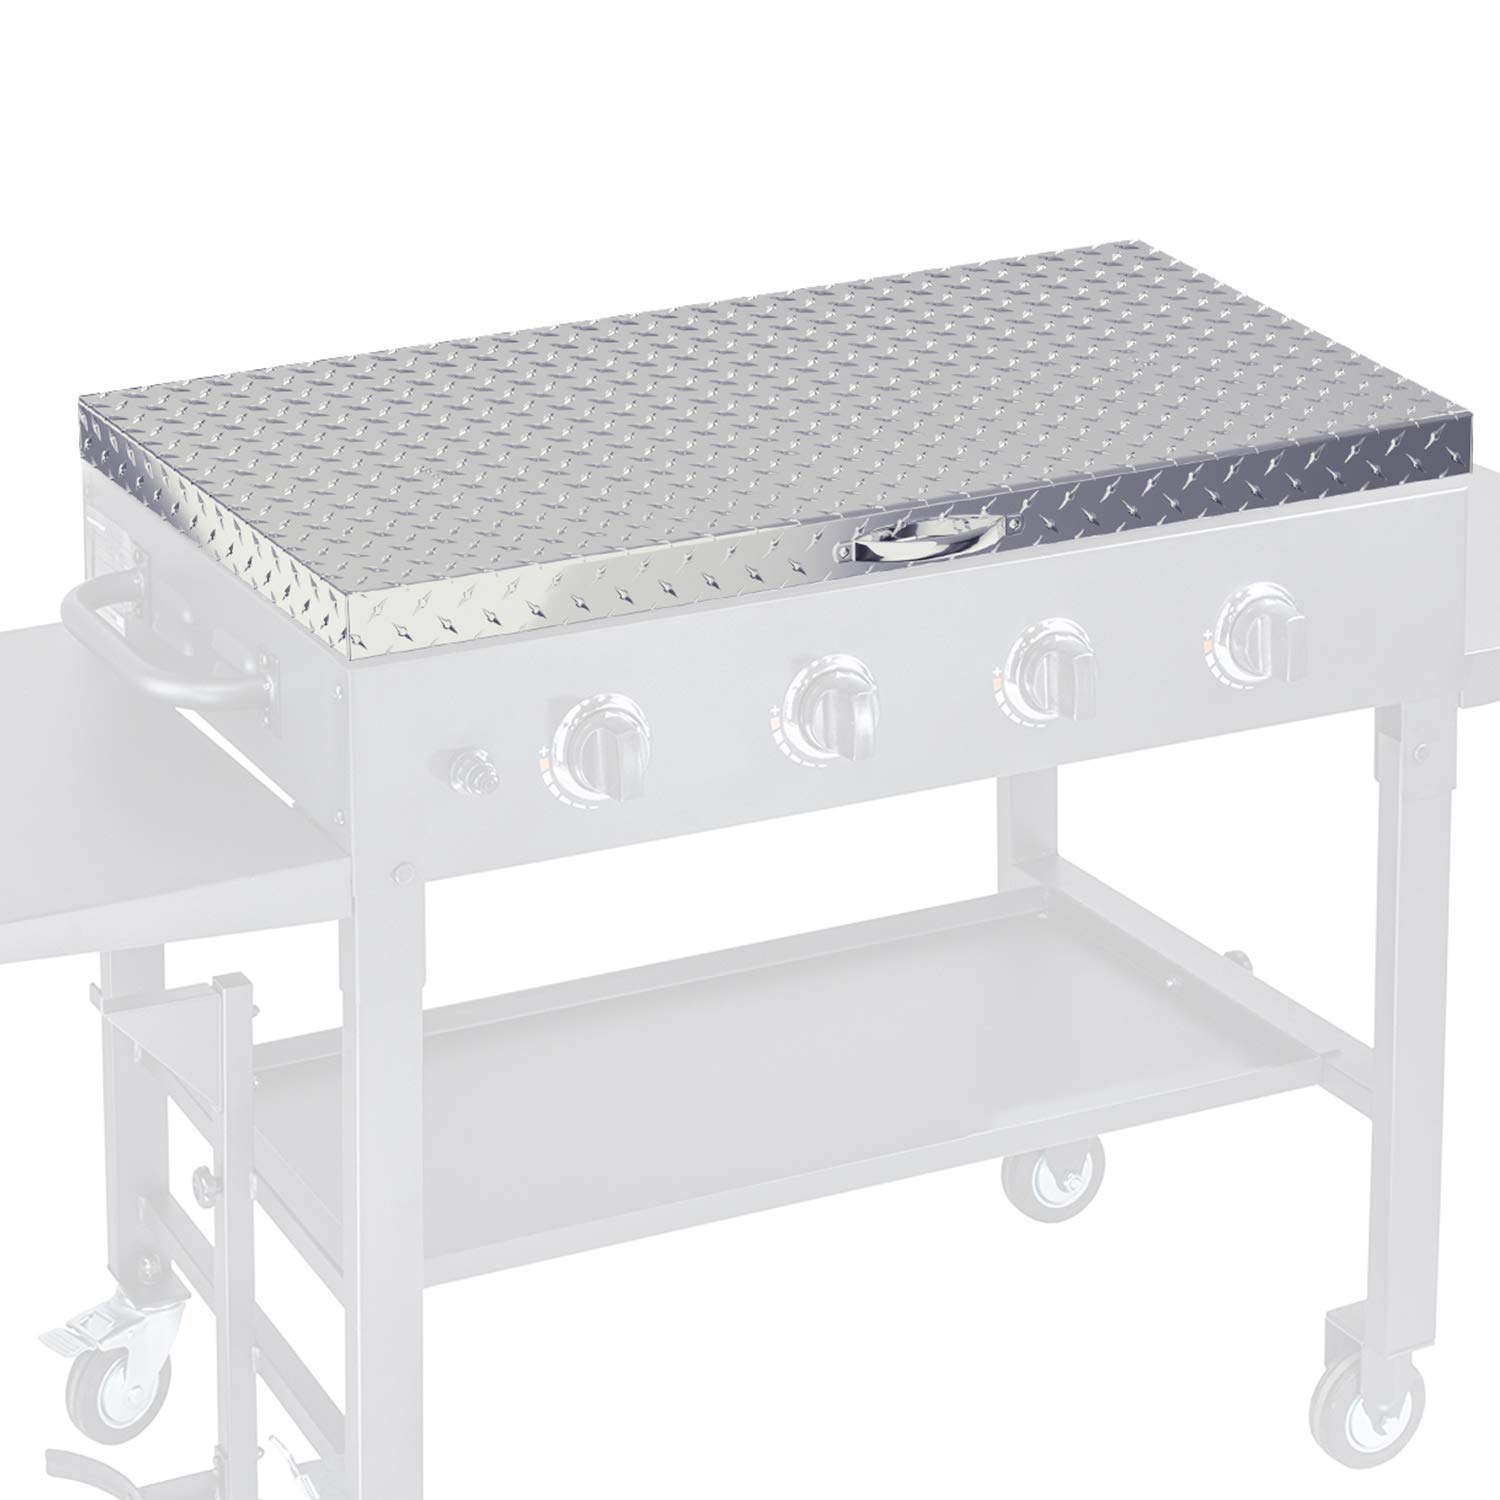 Griddle Cover 36 Inch Works For Blacksto Buy Online In Hong Kong At Desertcart